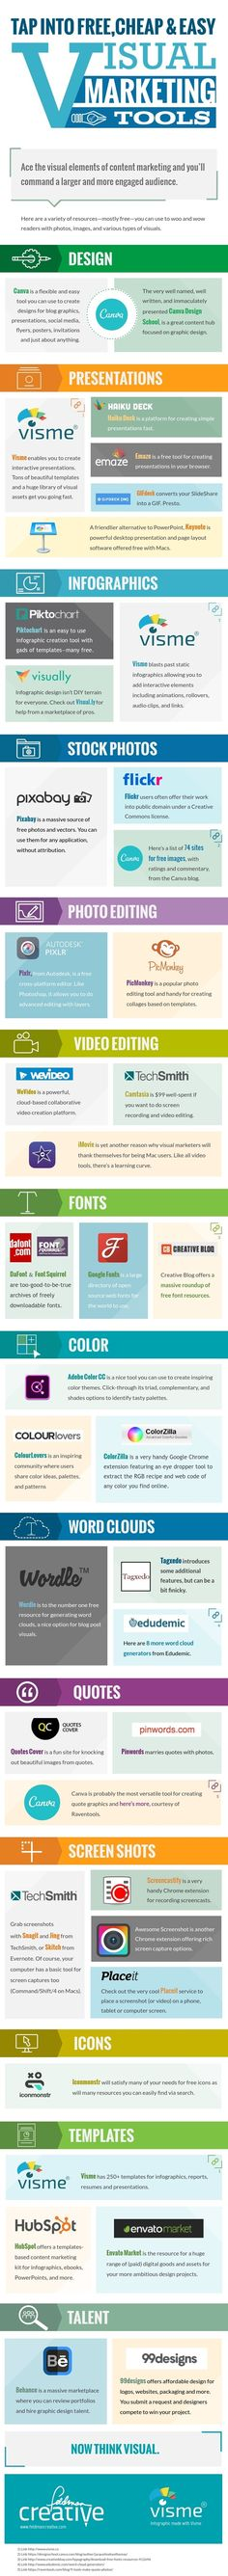 #upgrow Content - Tap Into Free, Cheap, and Easy Visual Marketing Tools [Infographic] : MarketingProfs Article